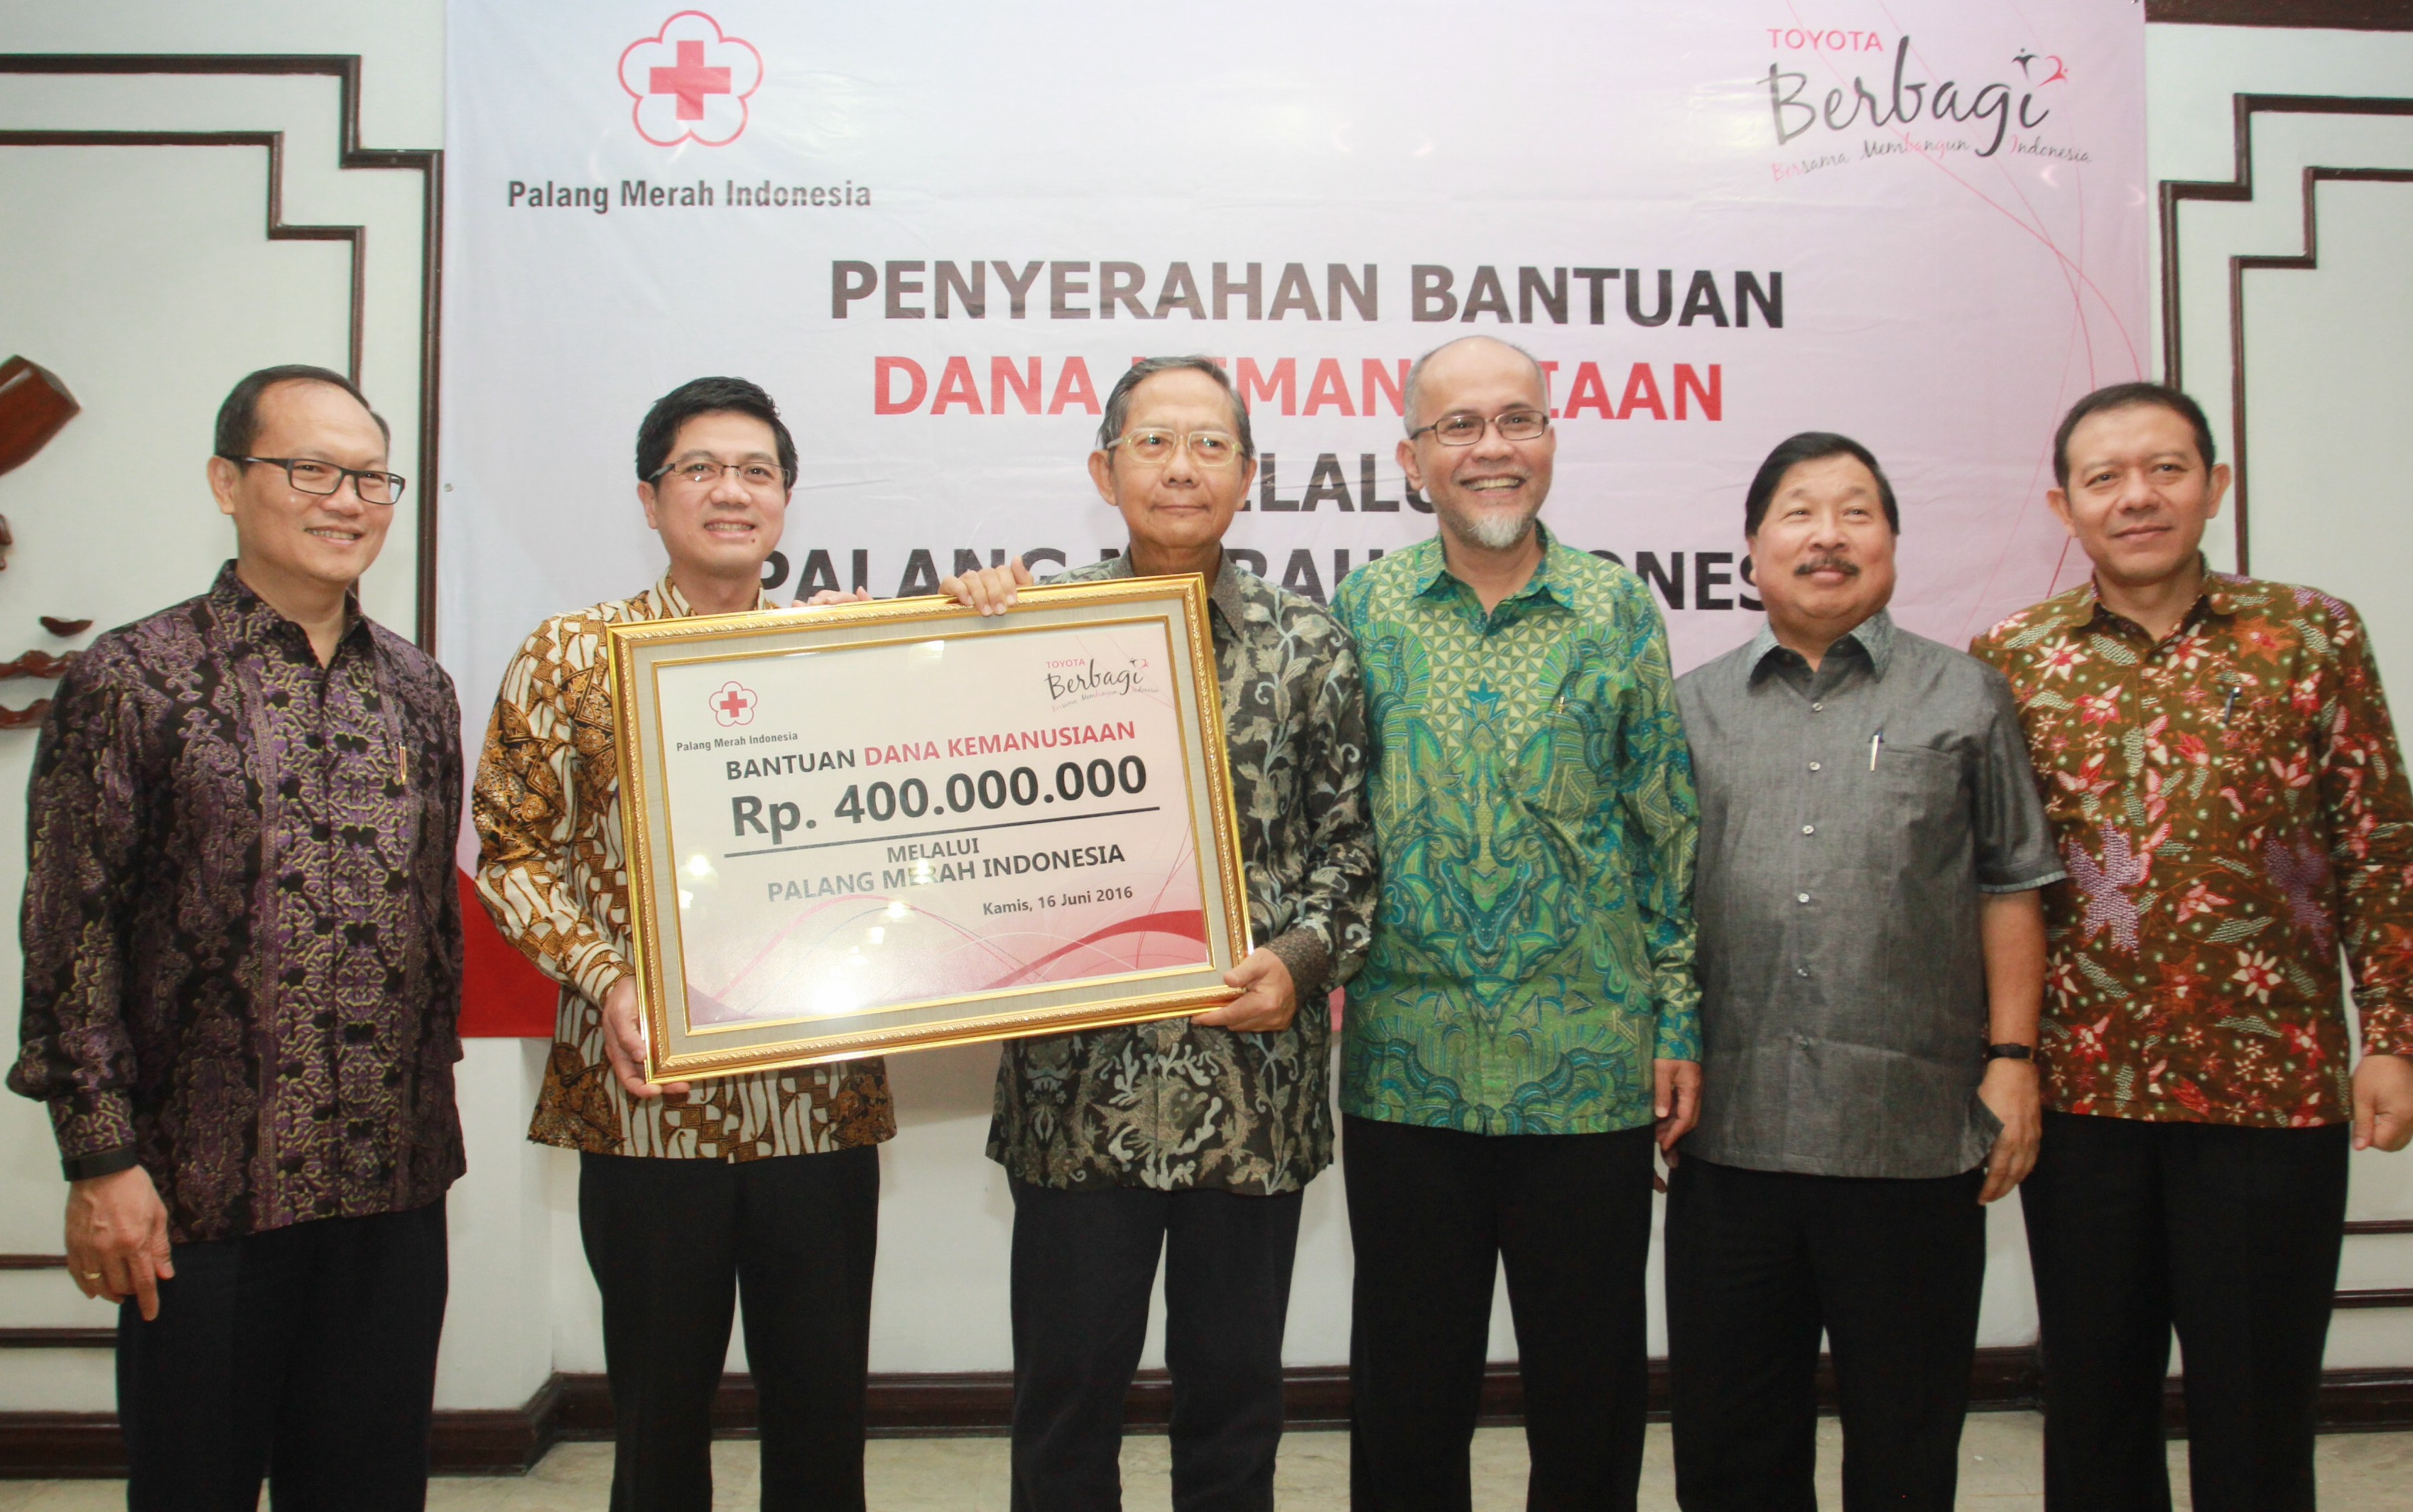 Toyota support the humanitarian activities through PMI